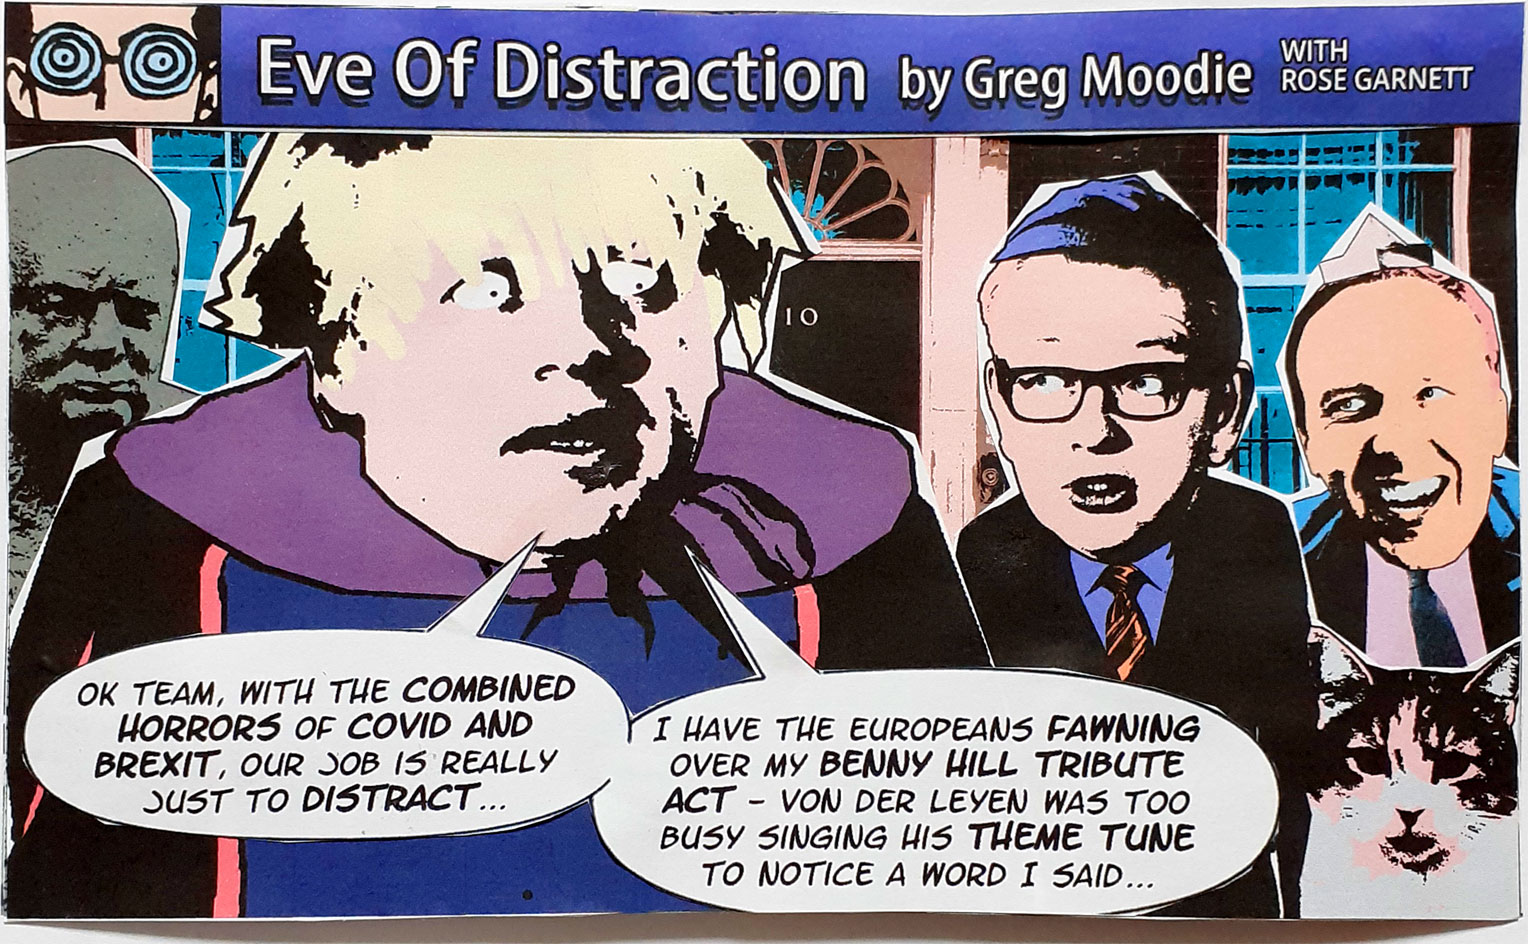 Eve Of Distraction